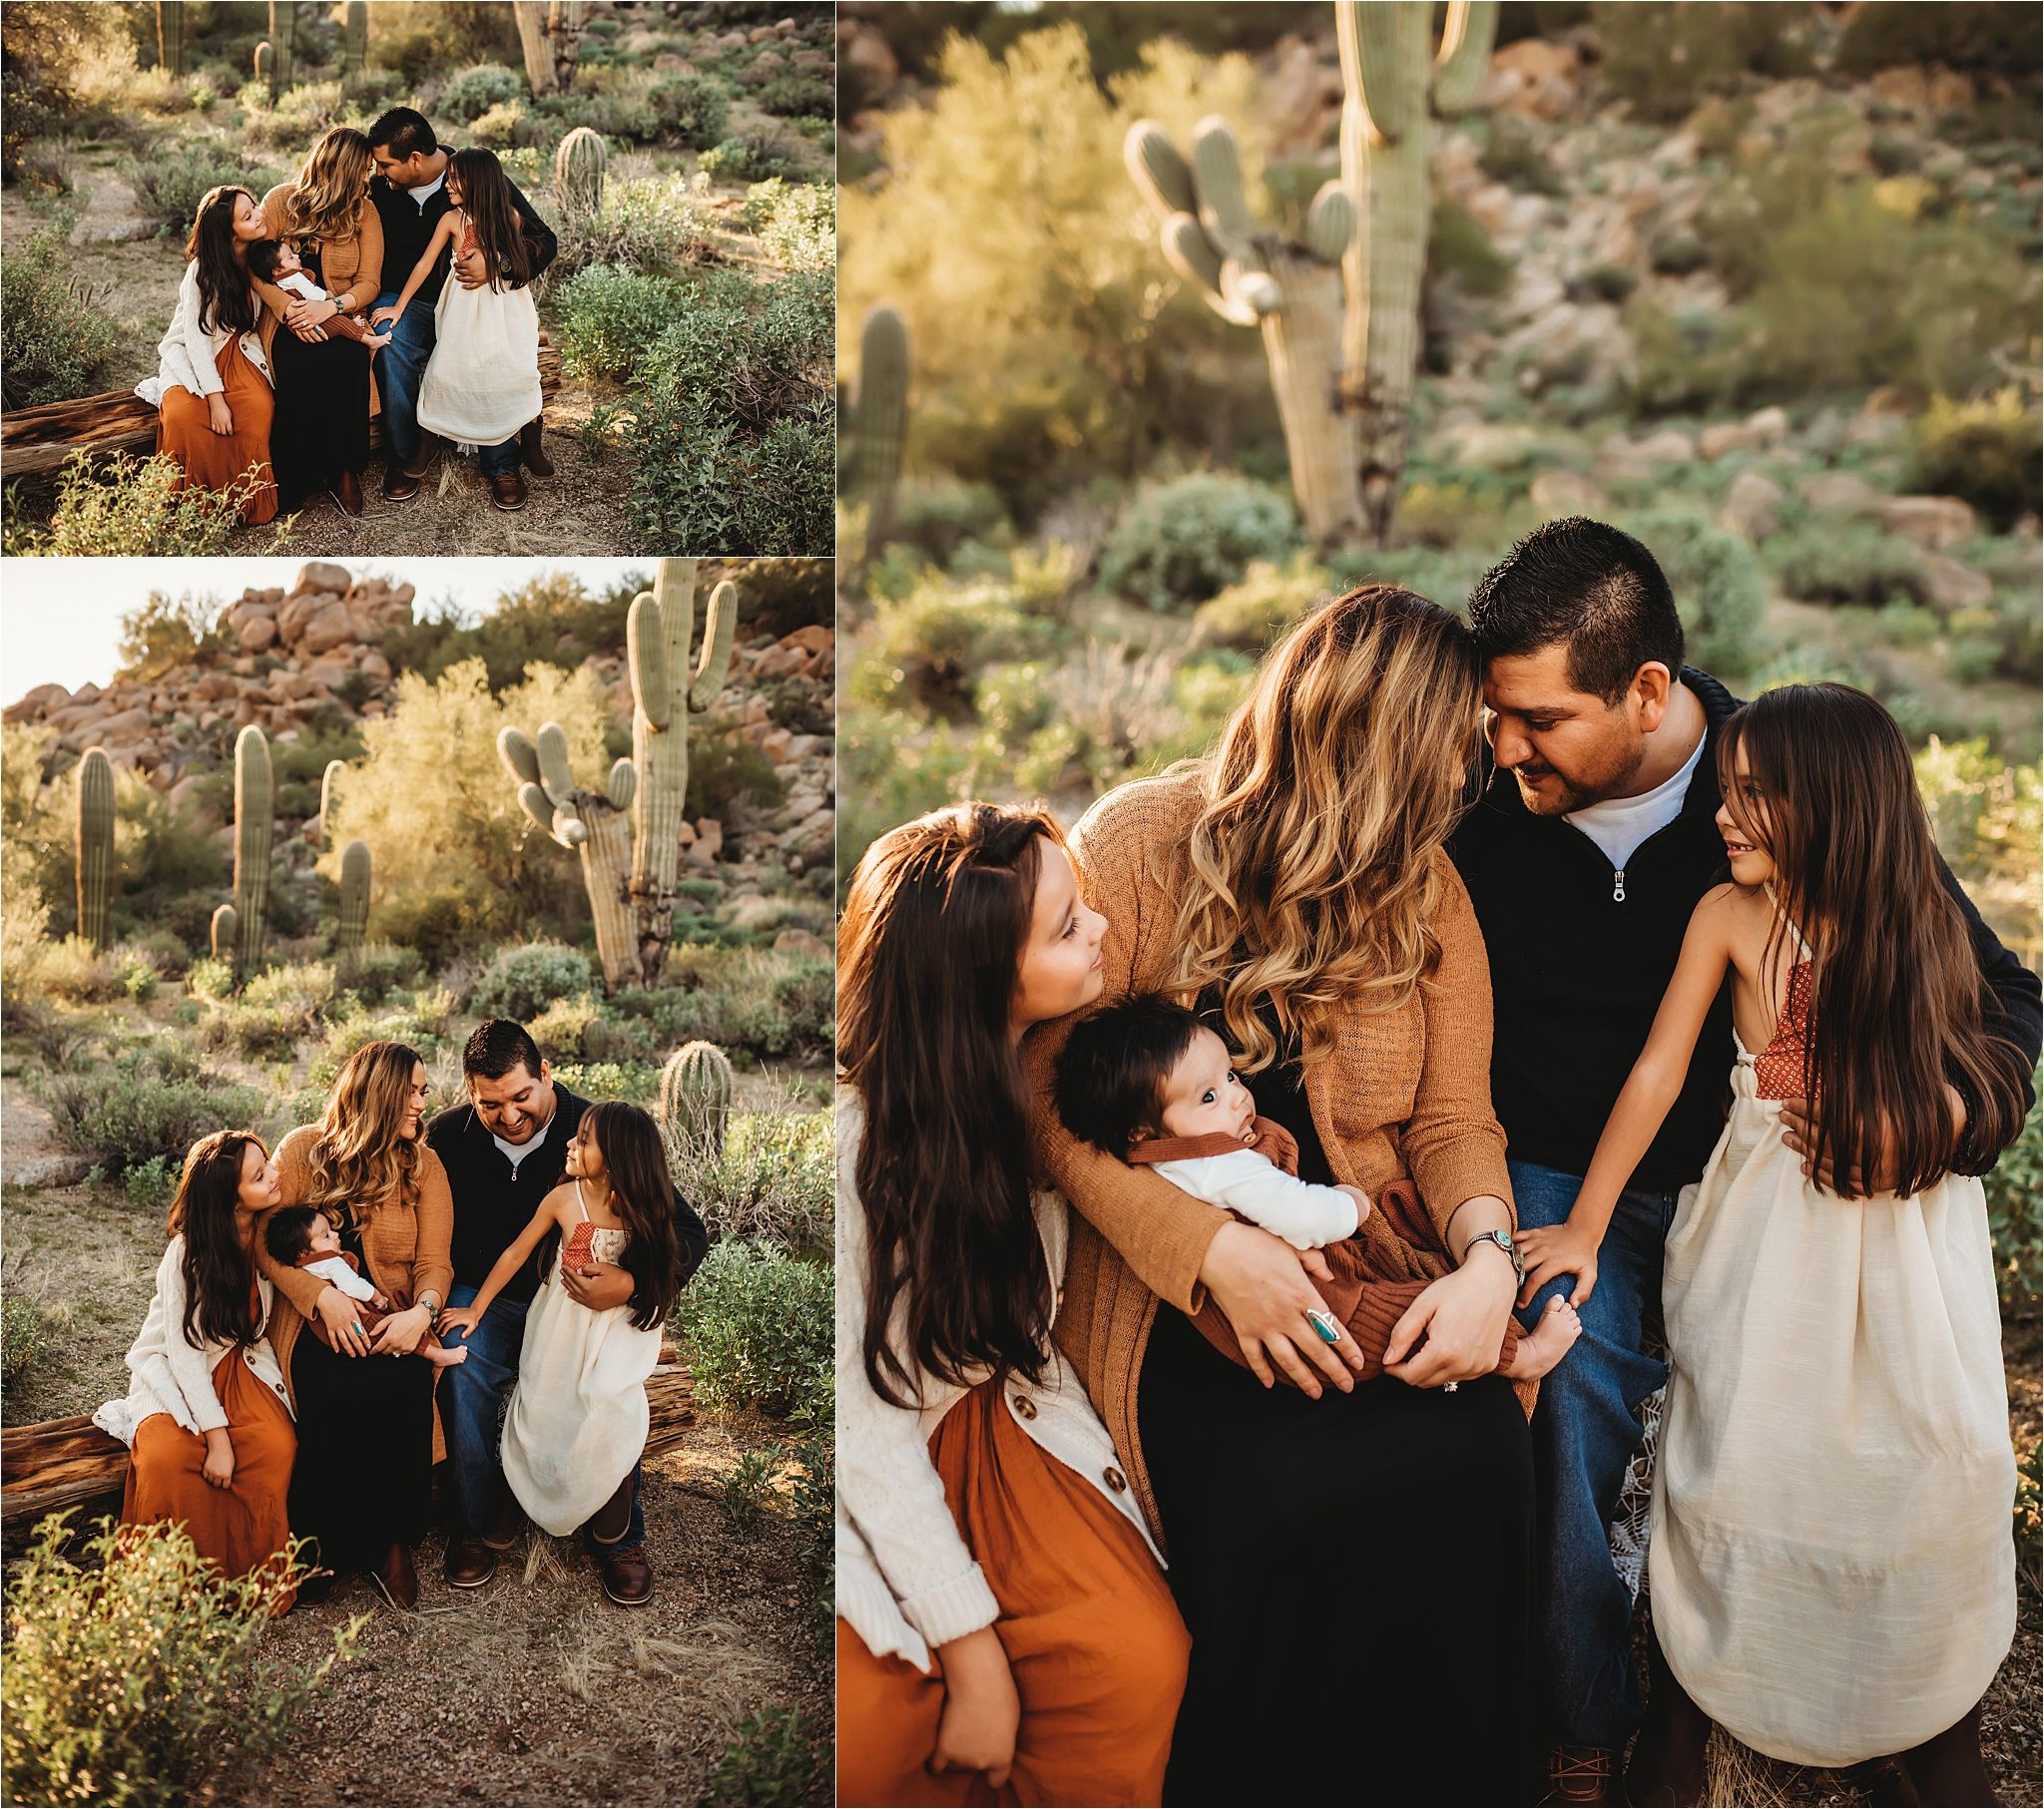 sunset-family-session-Sierra-Vista-Family-Photographer-in-Tucson_1654